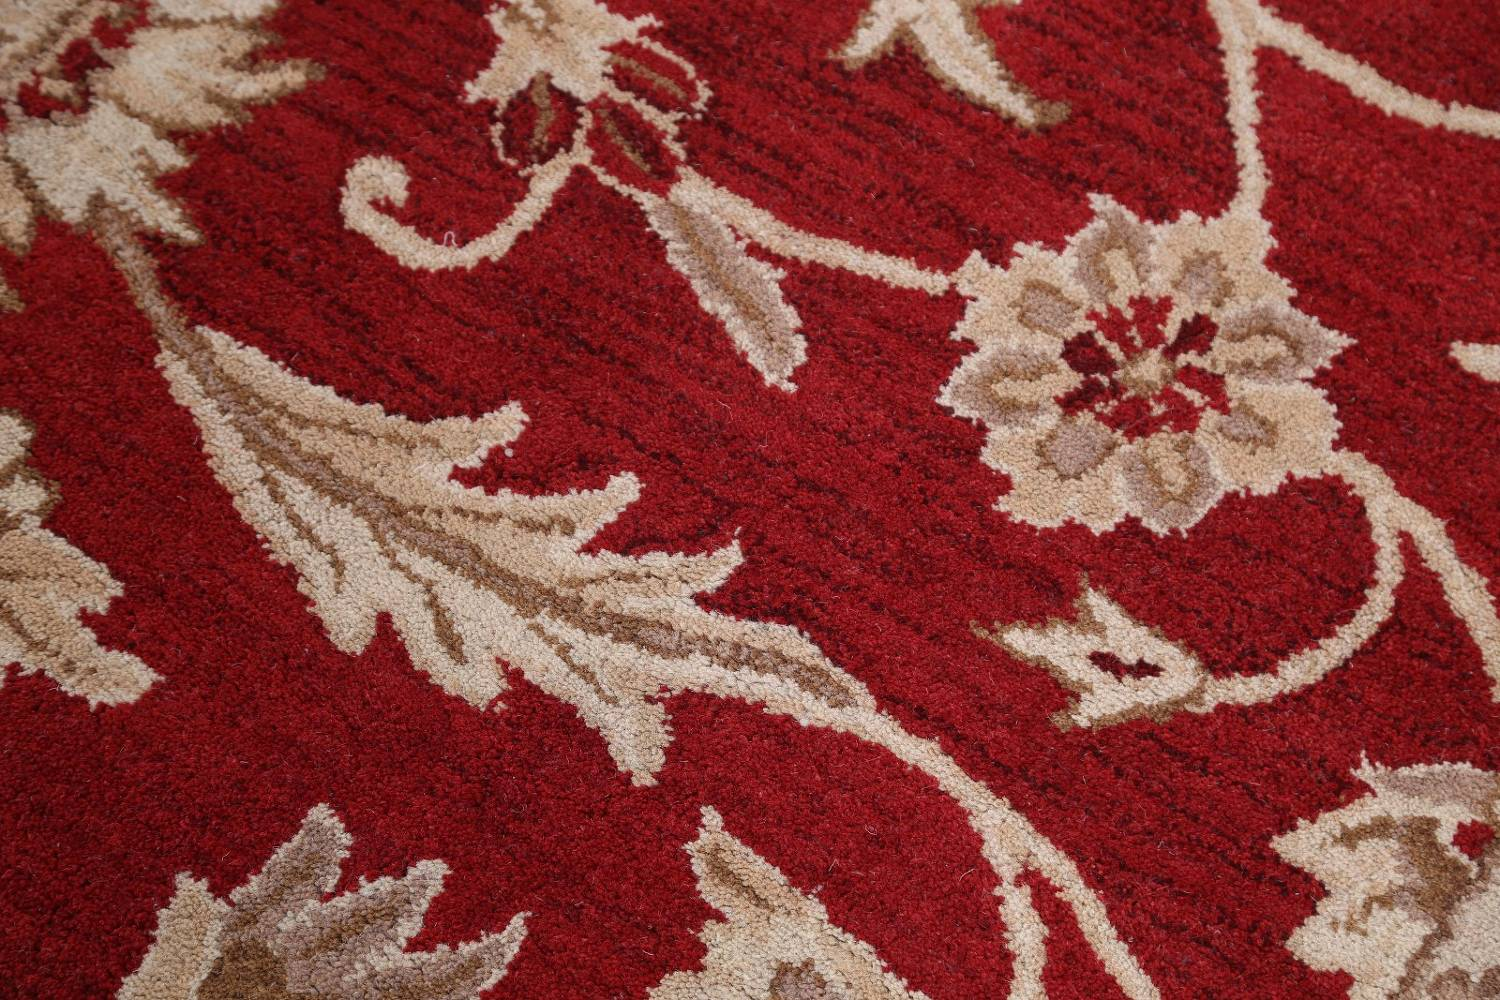 All-Over Floral Red Oushak Agra Oriental Area Rug image 9